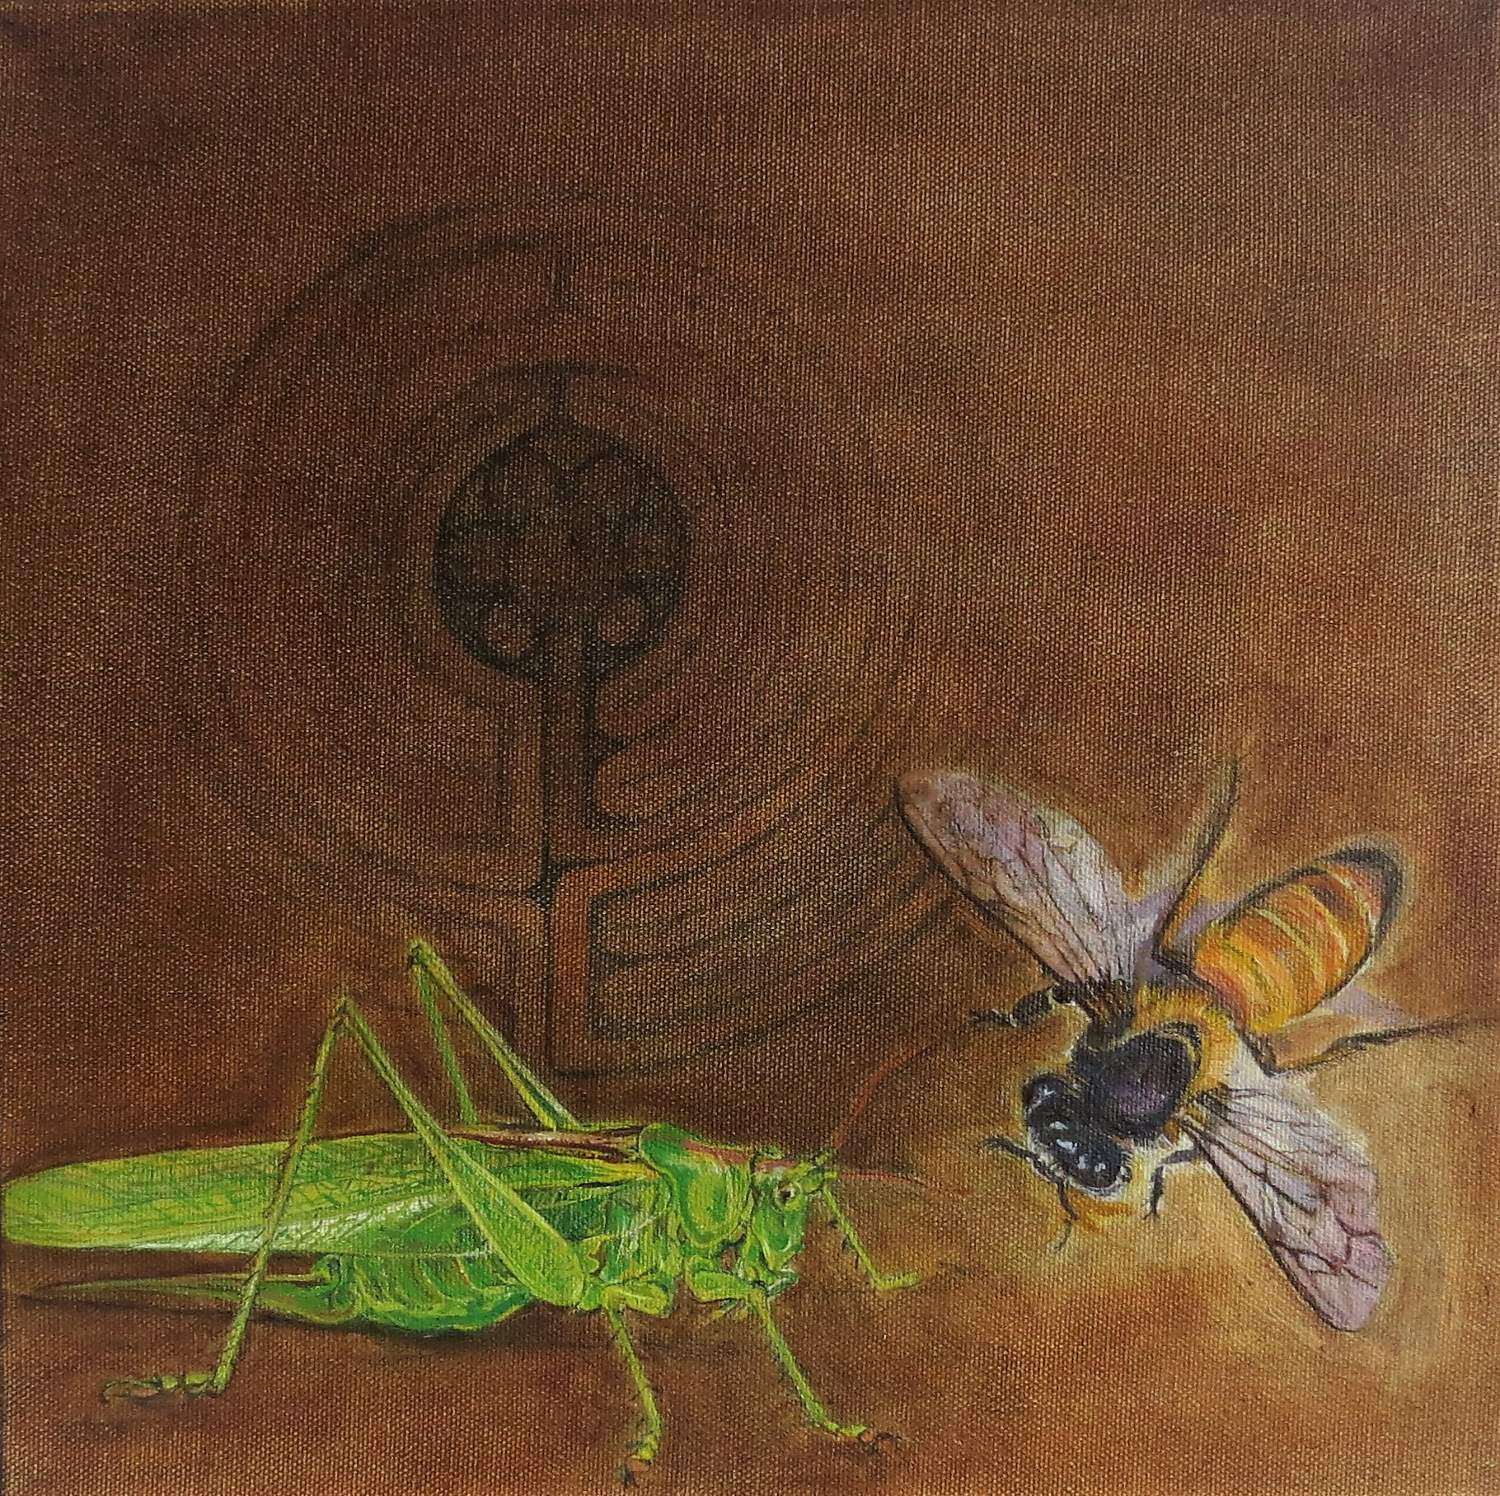 The Grasshopper and the Bee